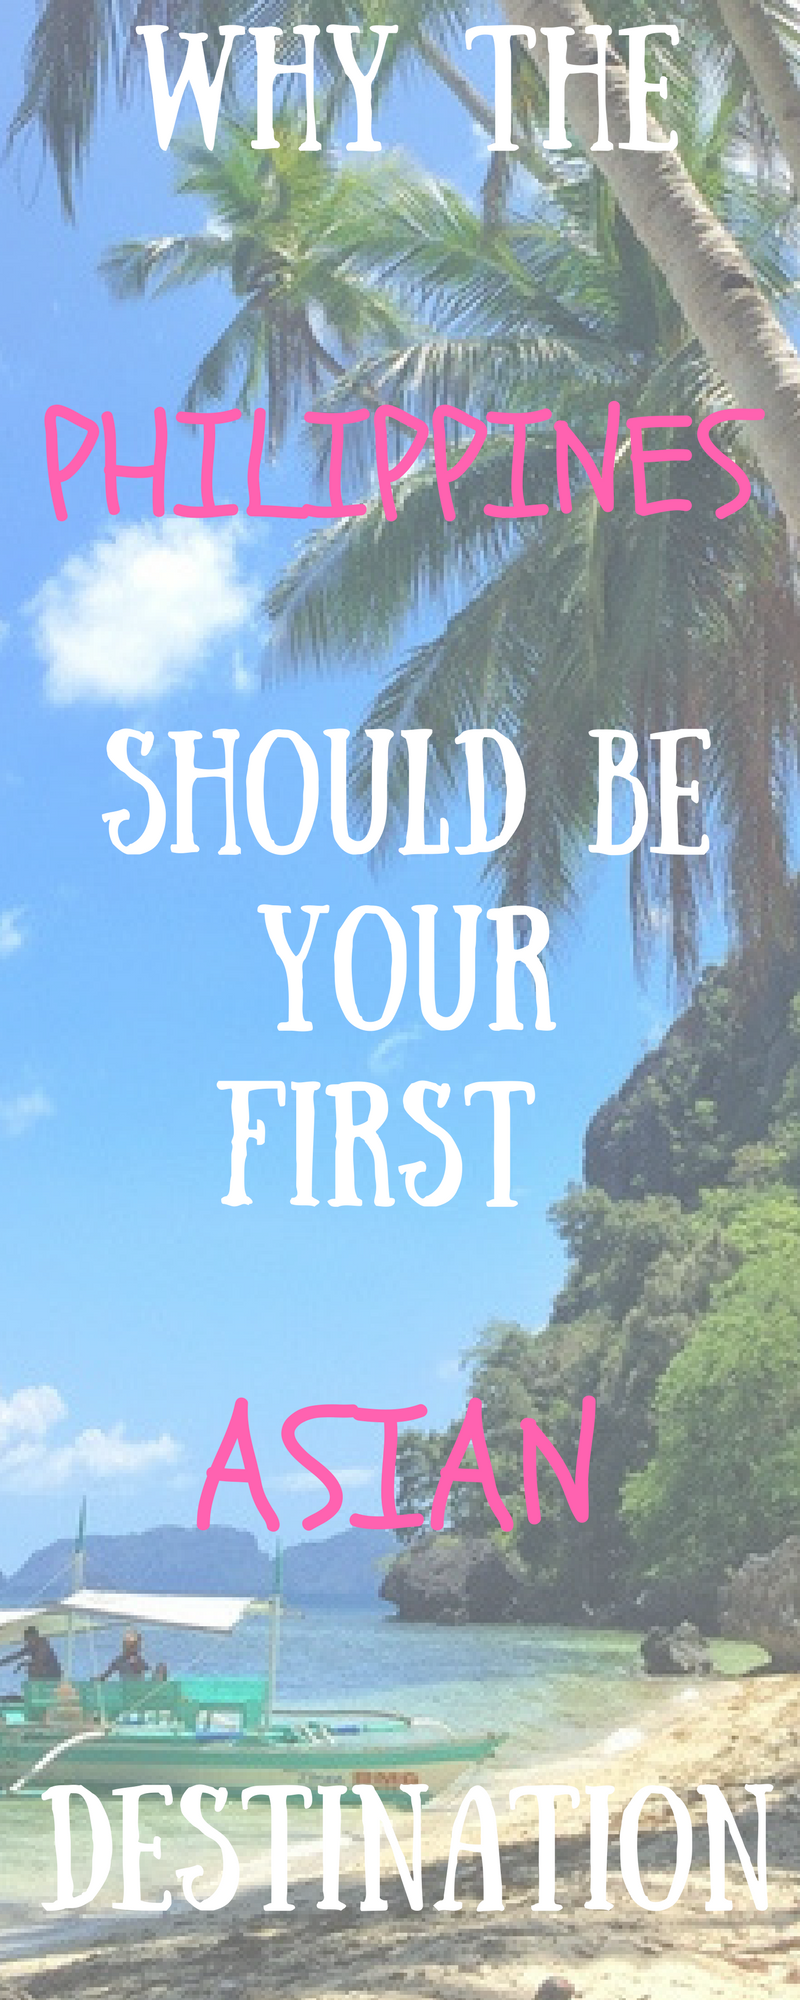 Philippines why it should be your first asian destination